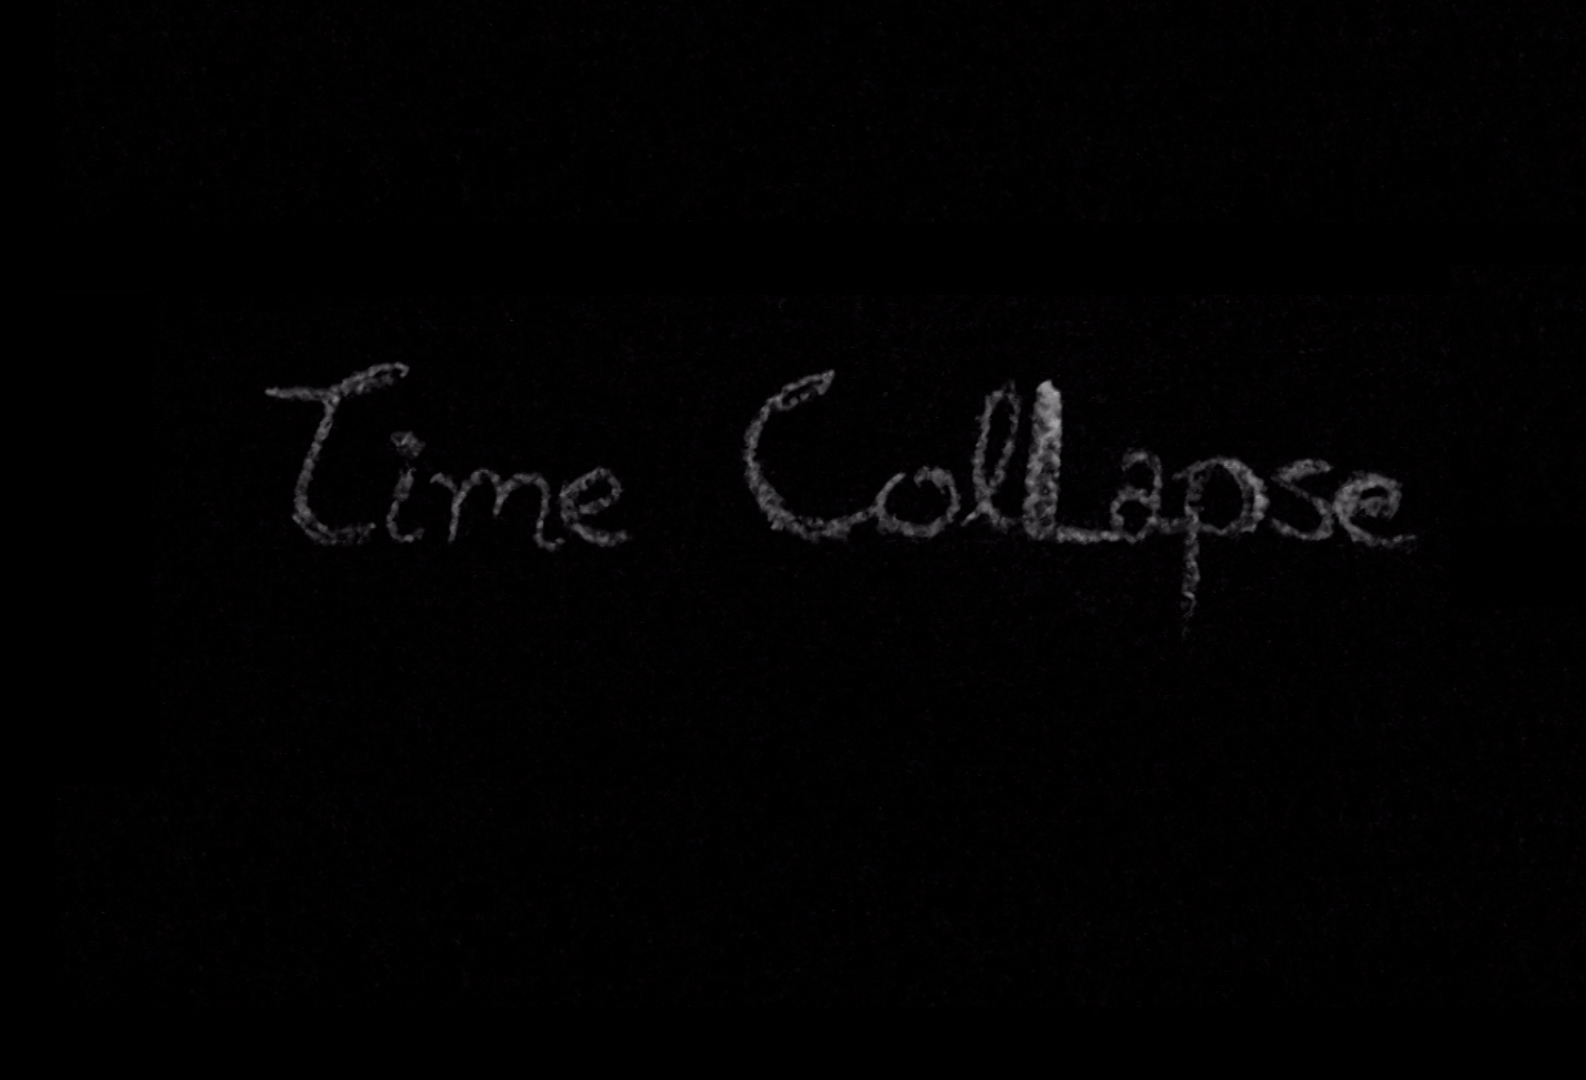 Athina_Kanellopoulou-Time-ColLapse-01